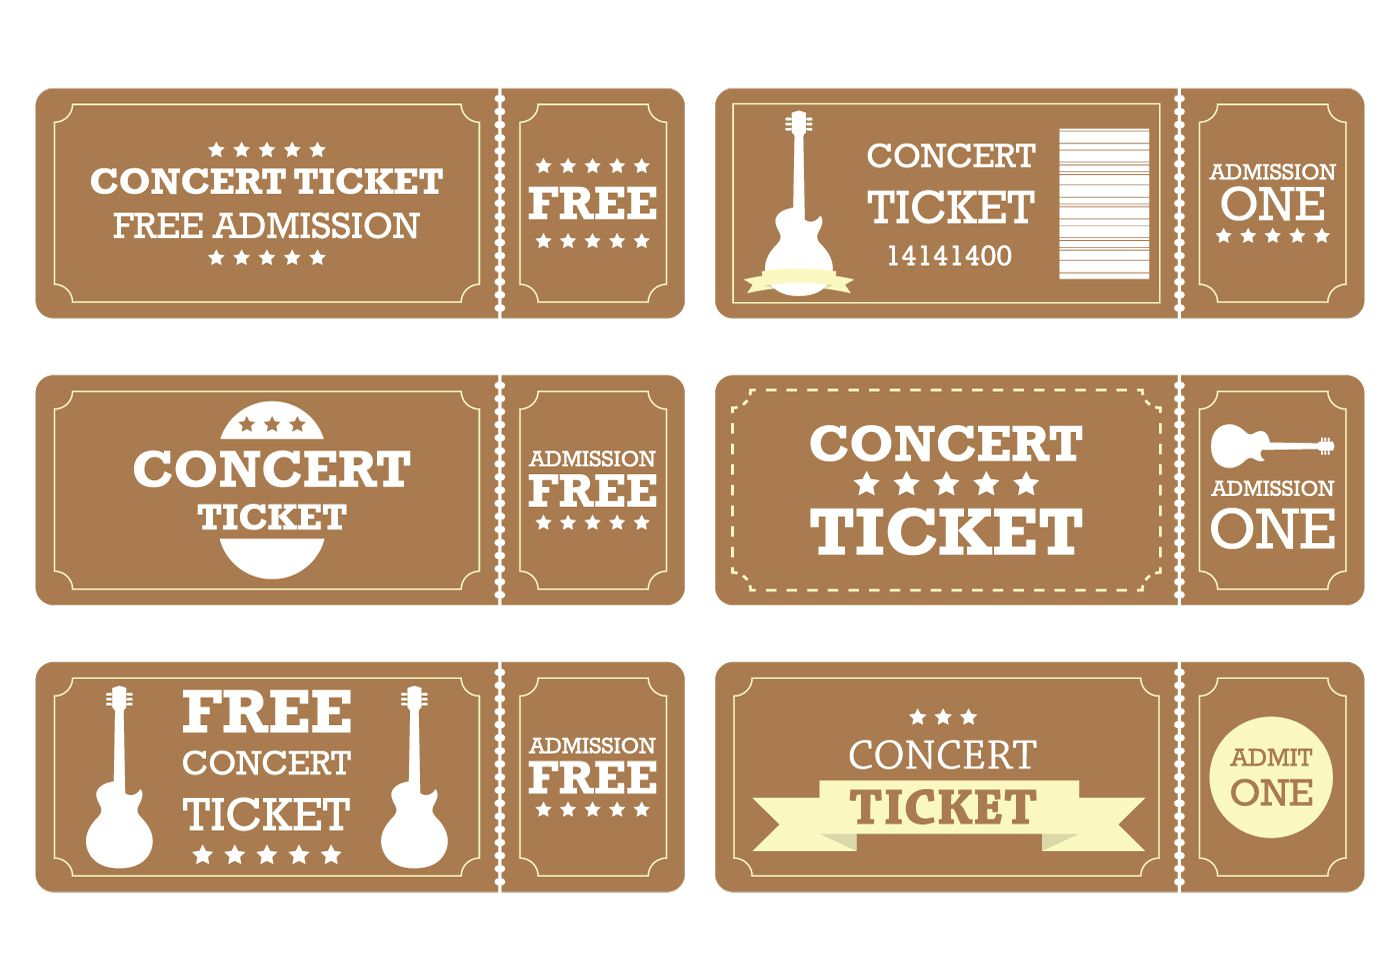 007 Phenomenal Vintage Concert Ticket Template Free Download Picture Full